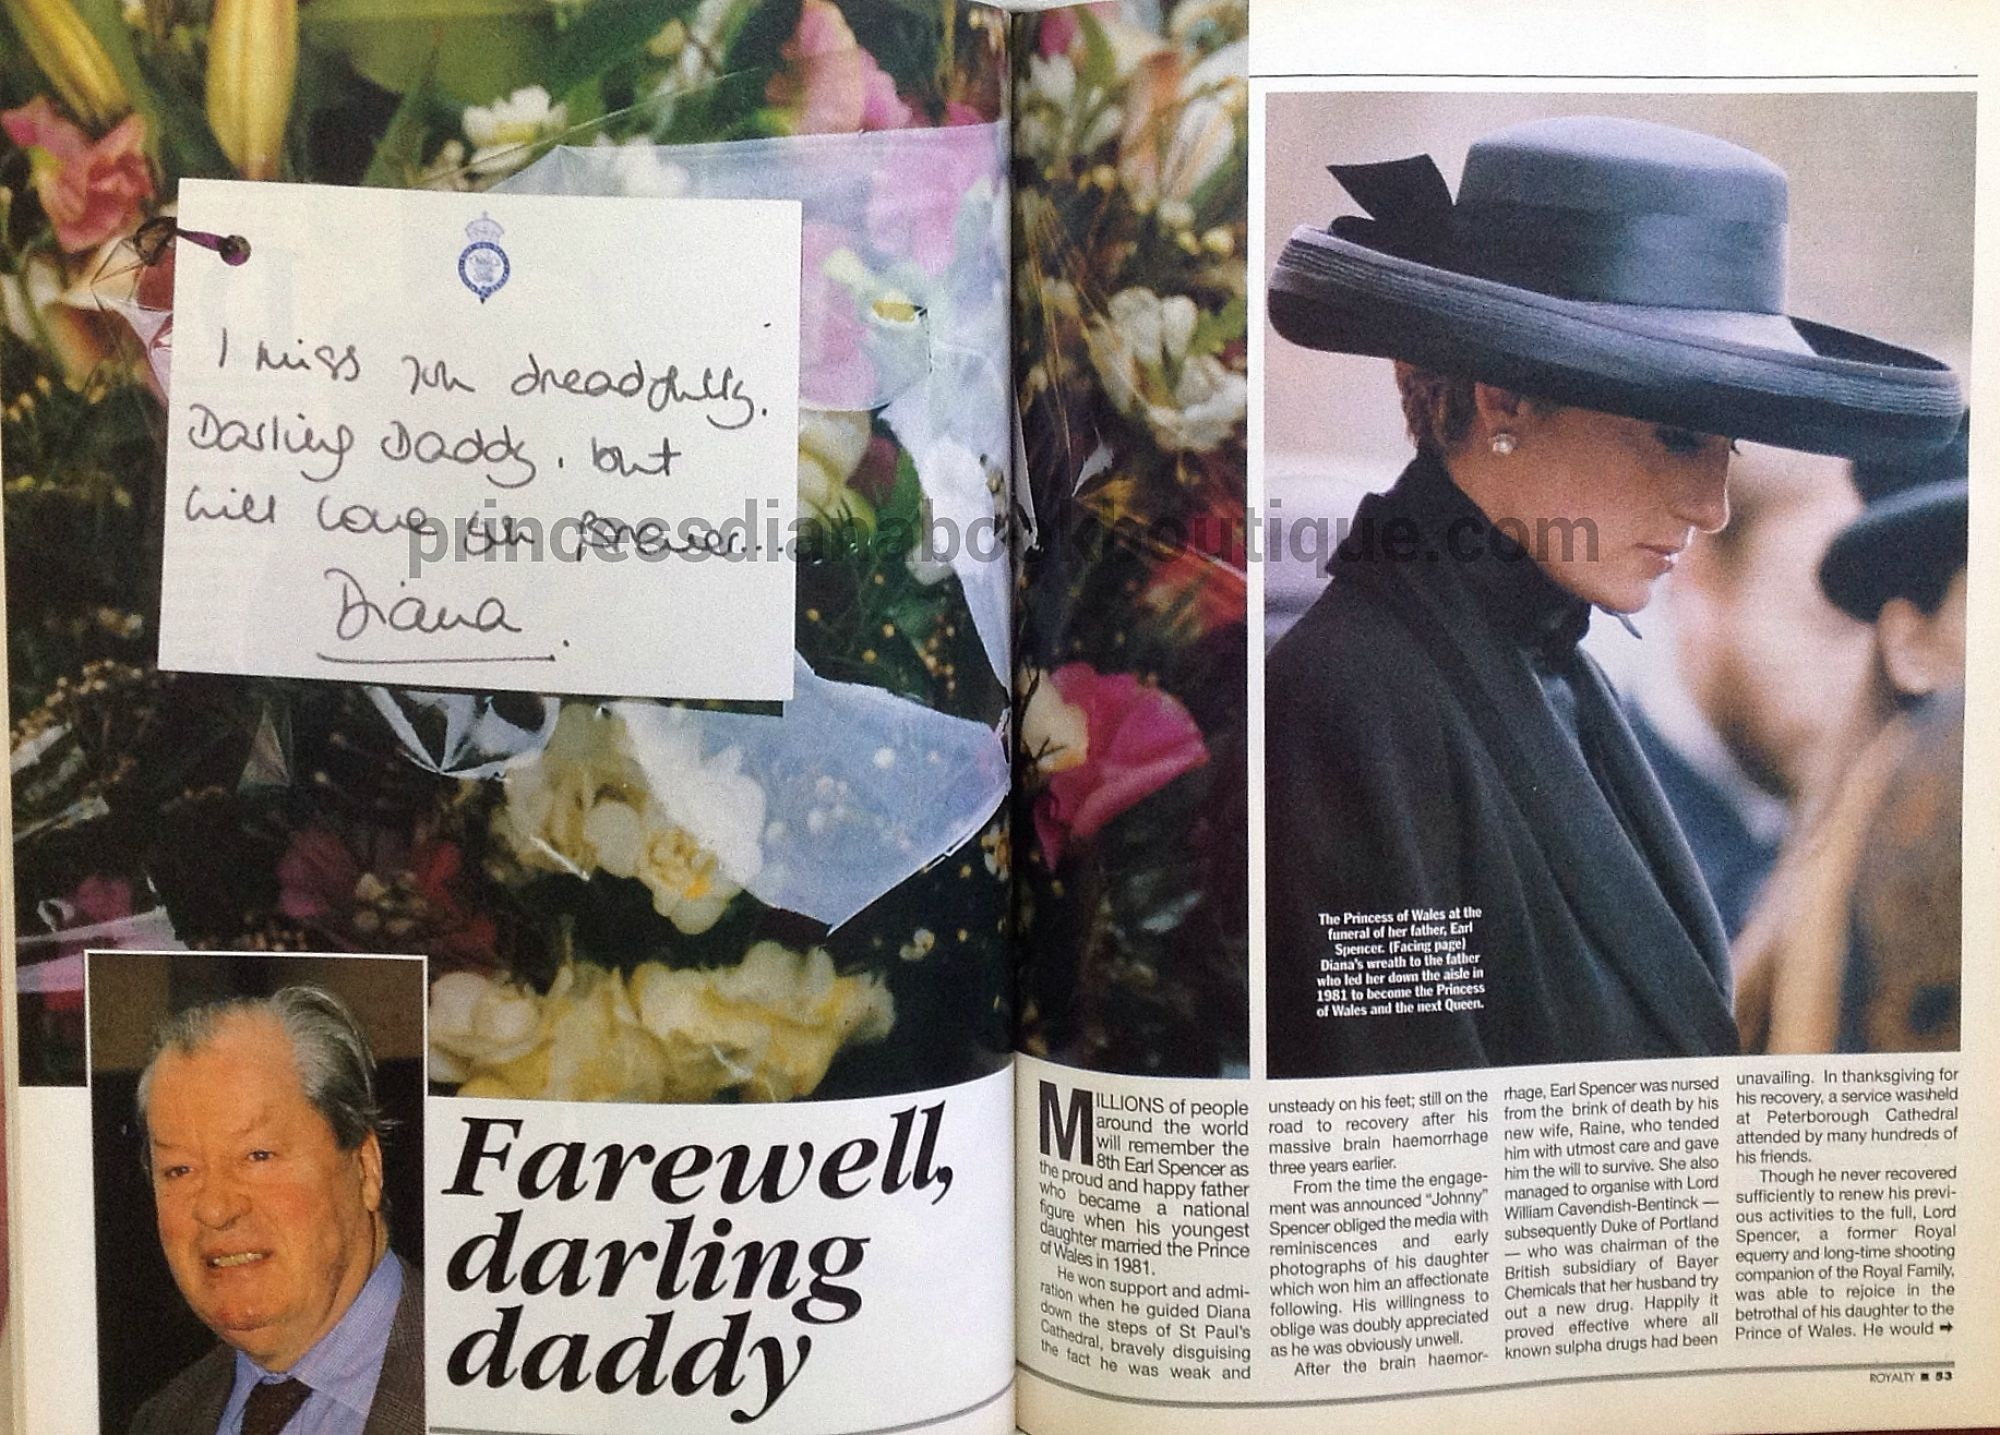 Where Is Princess Diana Buried 1 April 1992 Farewell Darling Daddy Princess Diana And